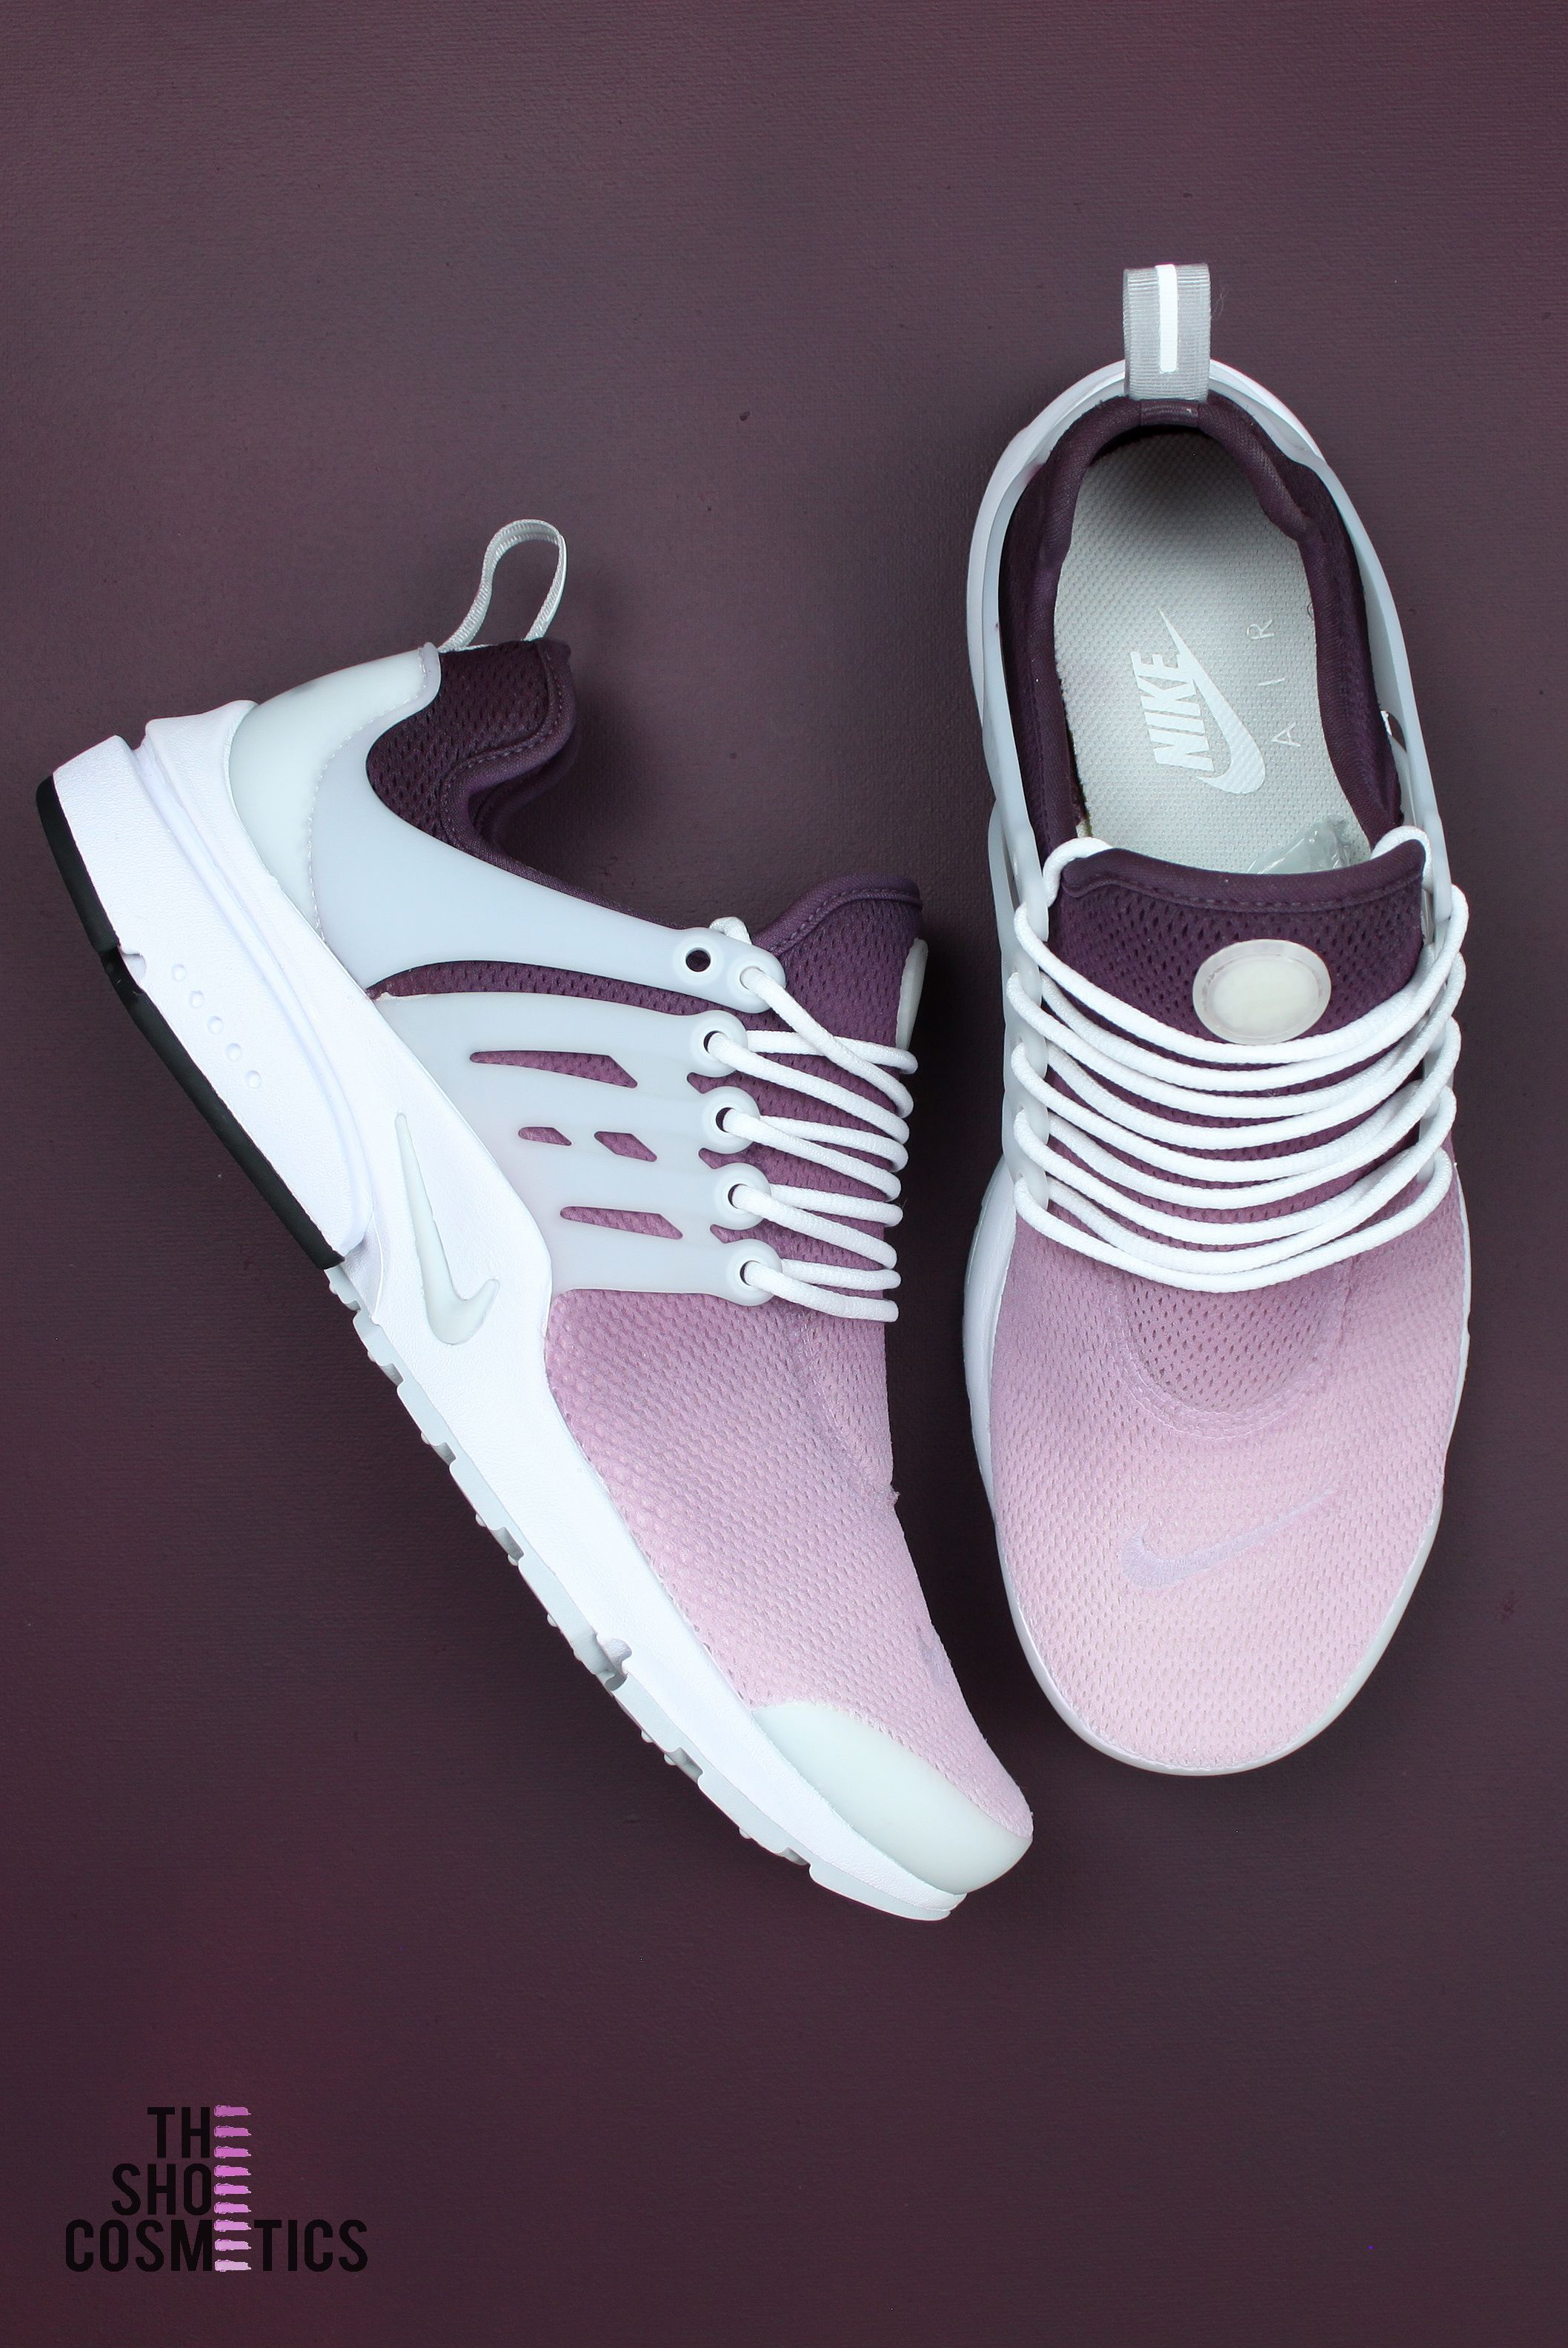 e7de373f3 Cute women's Custom Nike sneakers. TheShoeCosmetics Maroon ombre girly Nike  Air Presto are a stylish, comfy & fashionable summer trainer perfect for  for ...